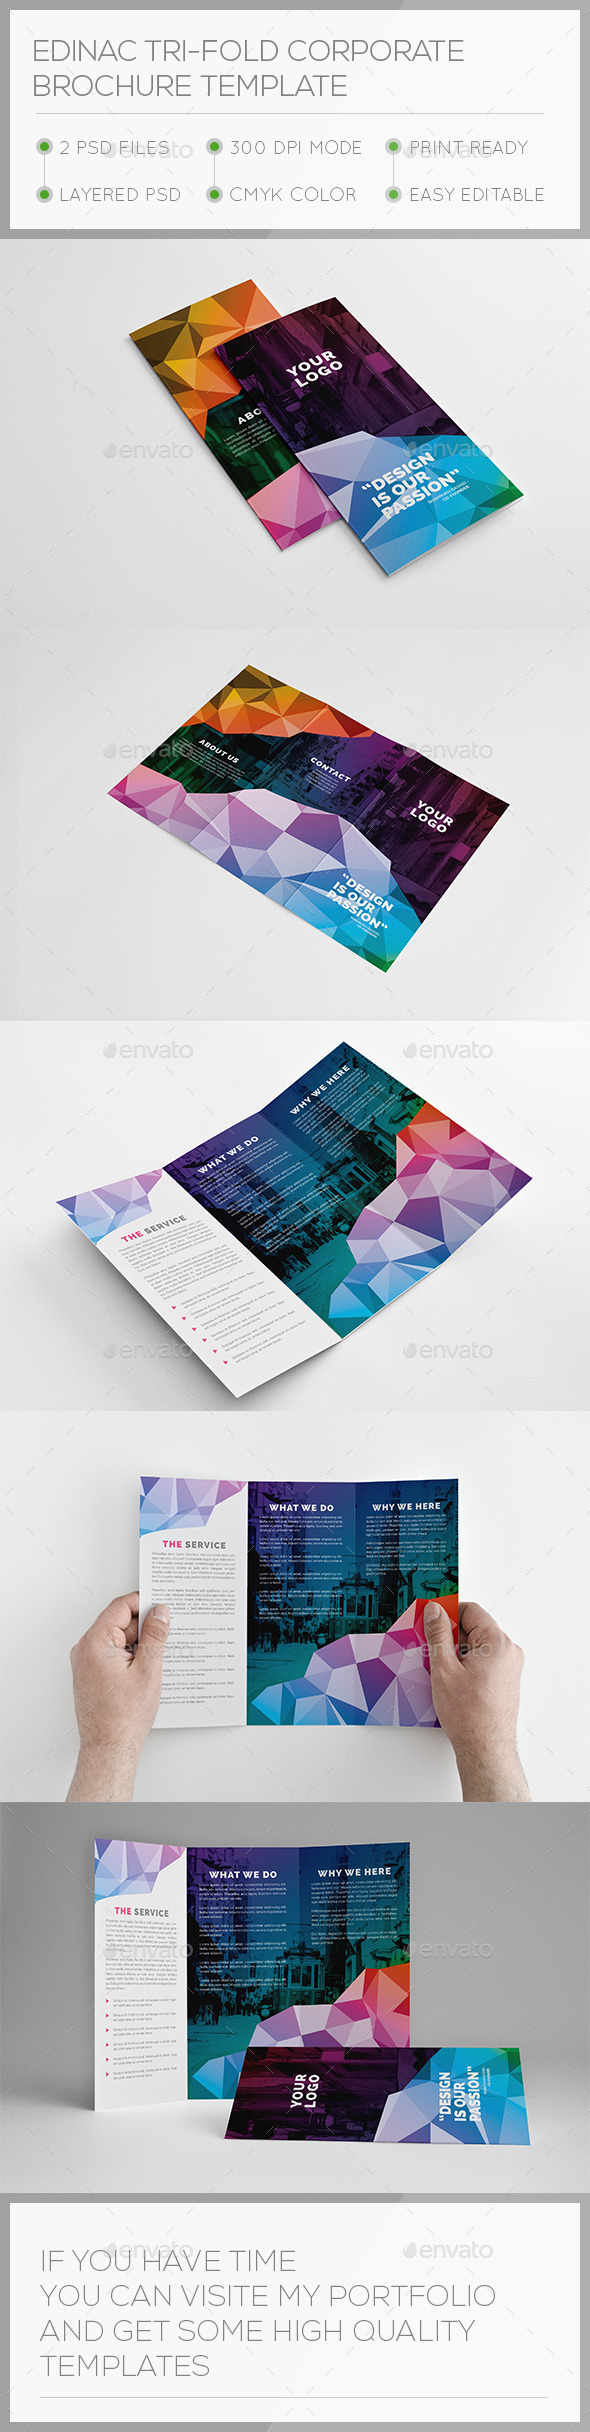 Edinac Tri-fold Corporate Brochure Template